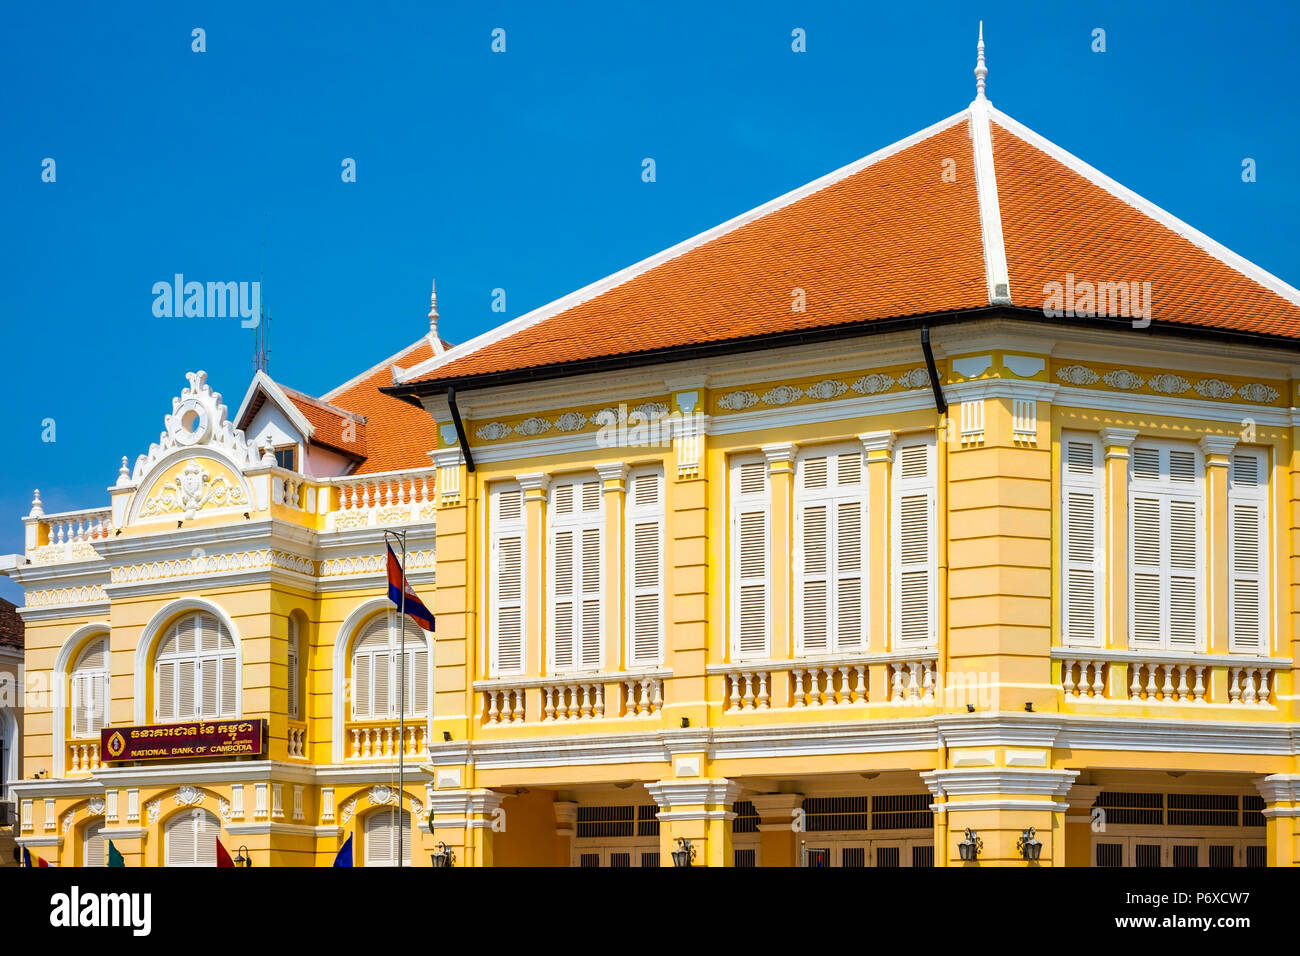 Colonial buildings along the riverfront in Battambang, Cambodia - Stock Image